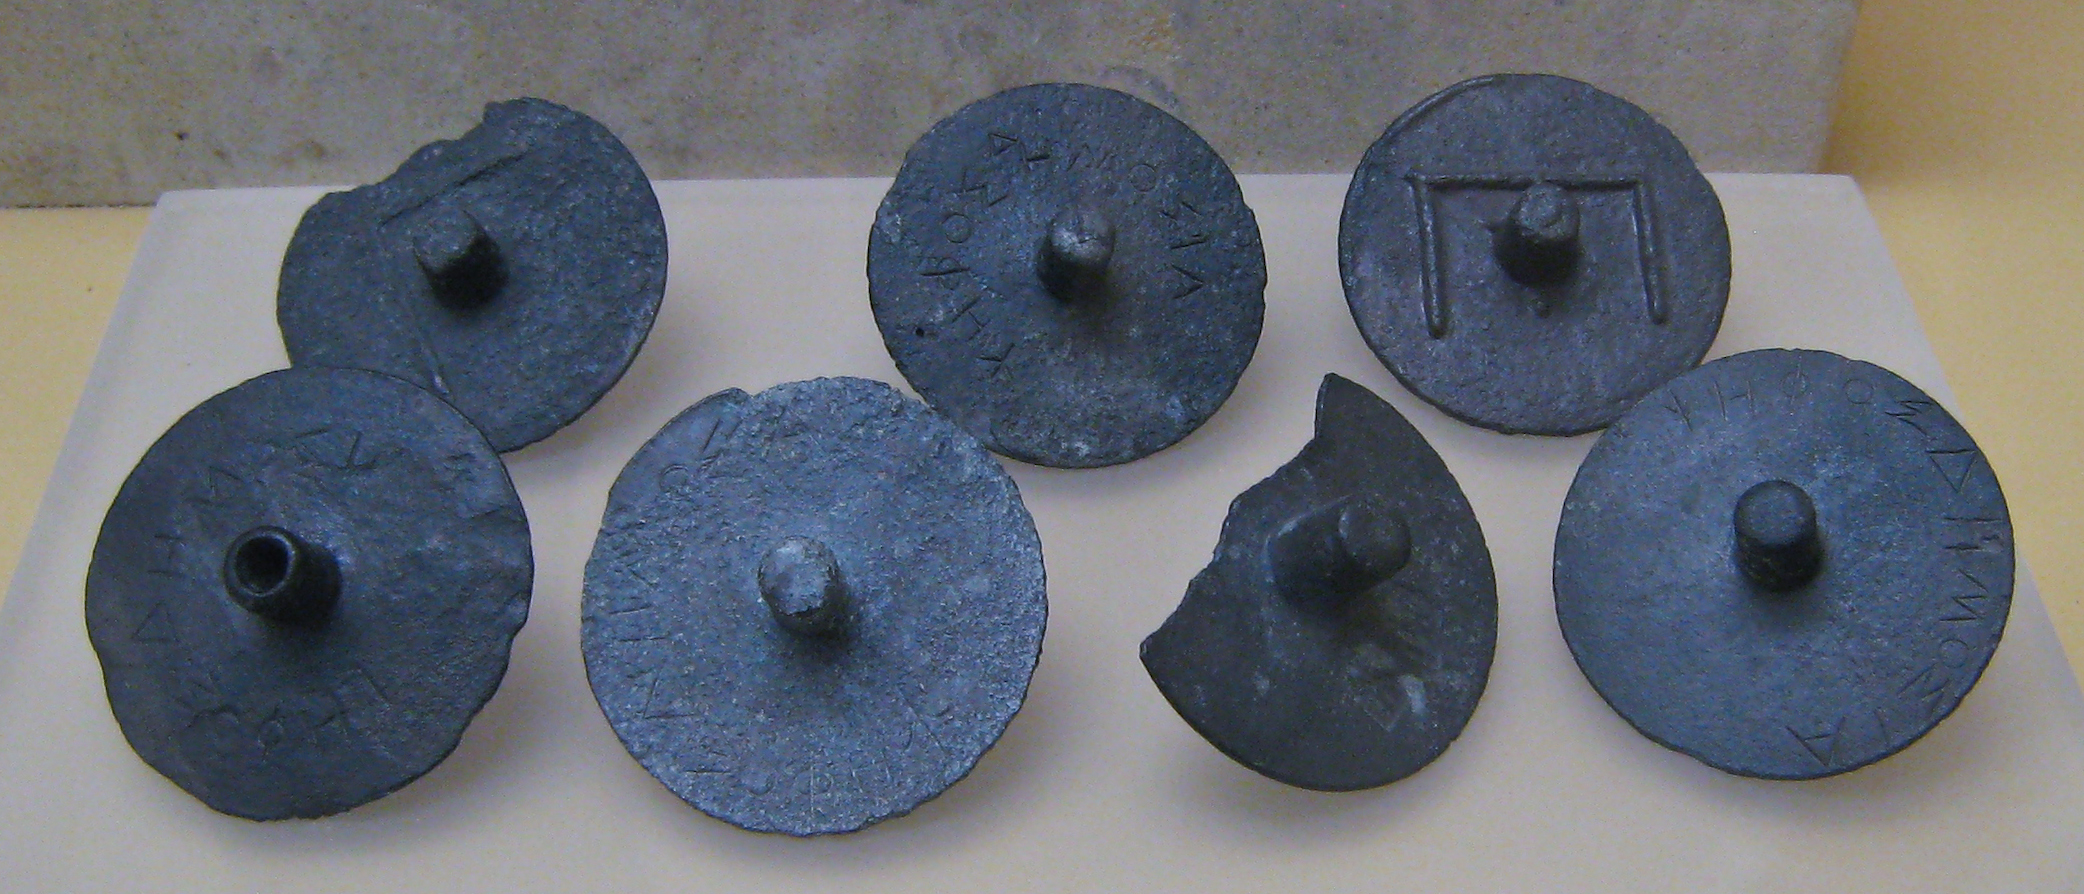 Disks used for batllots